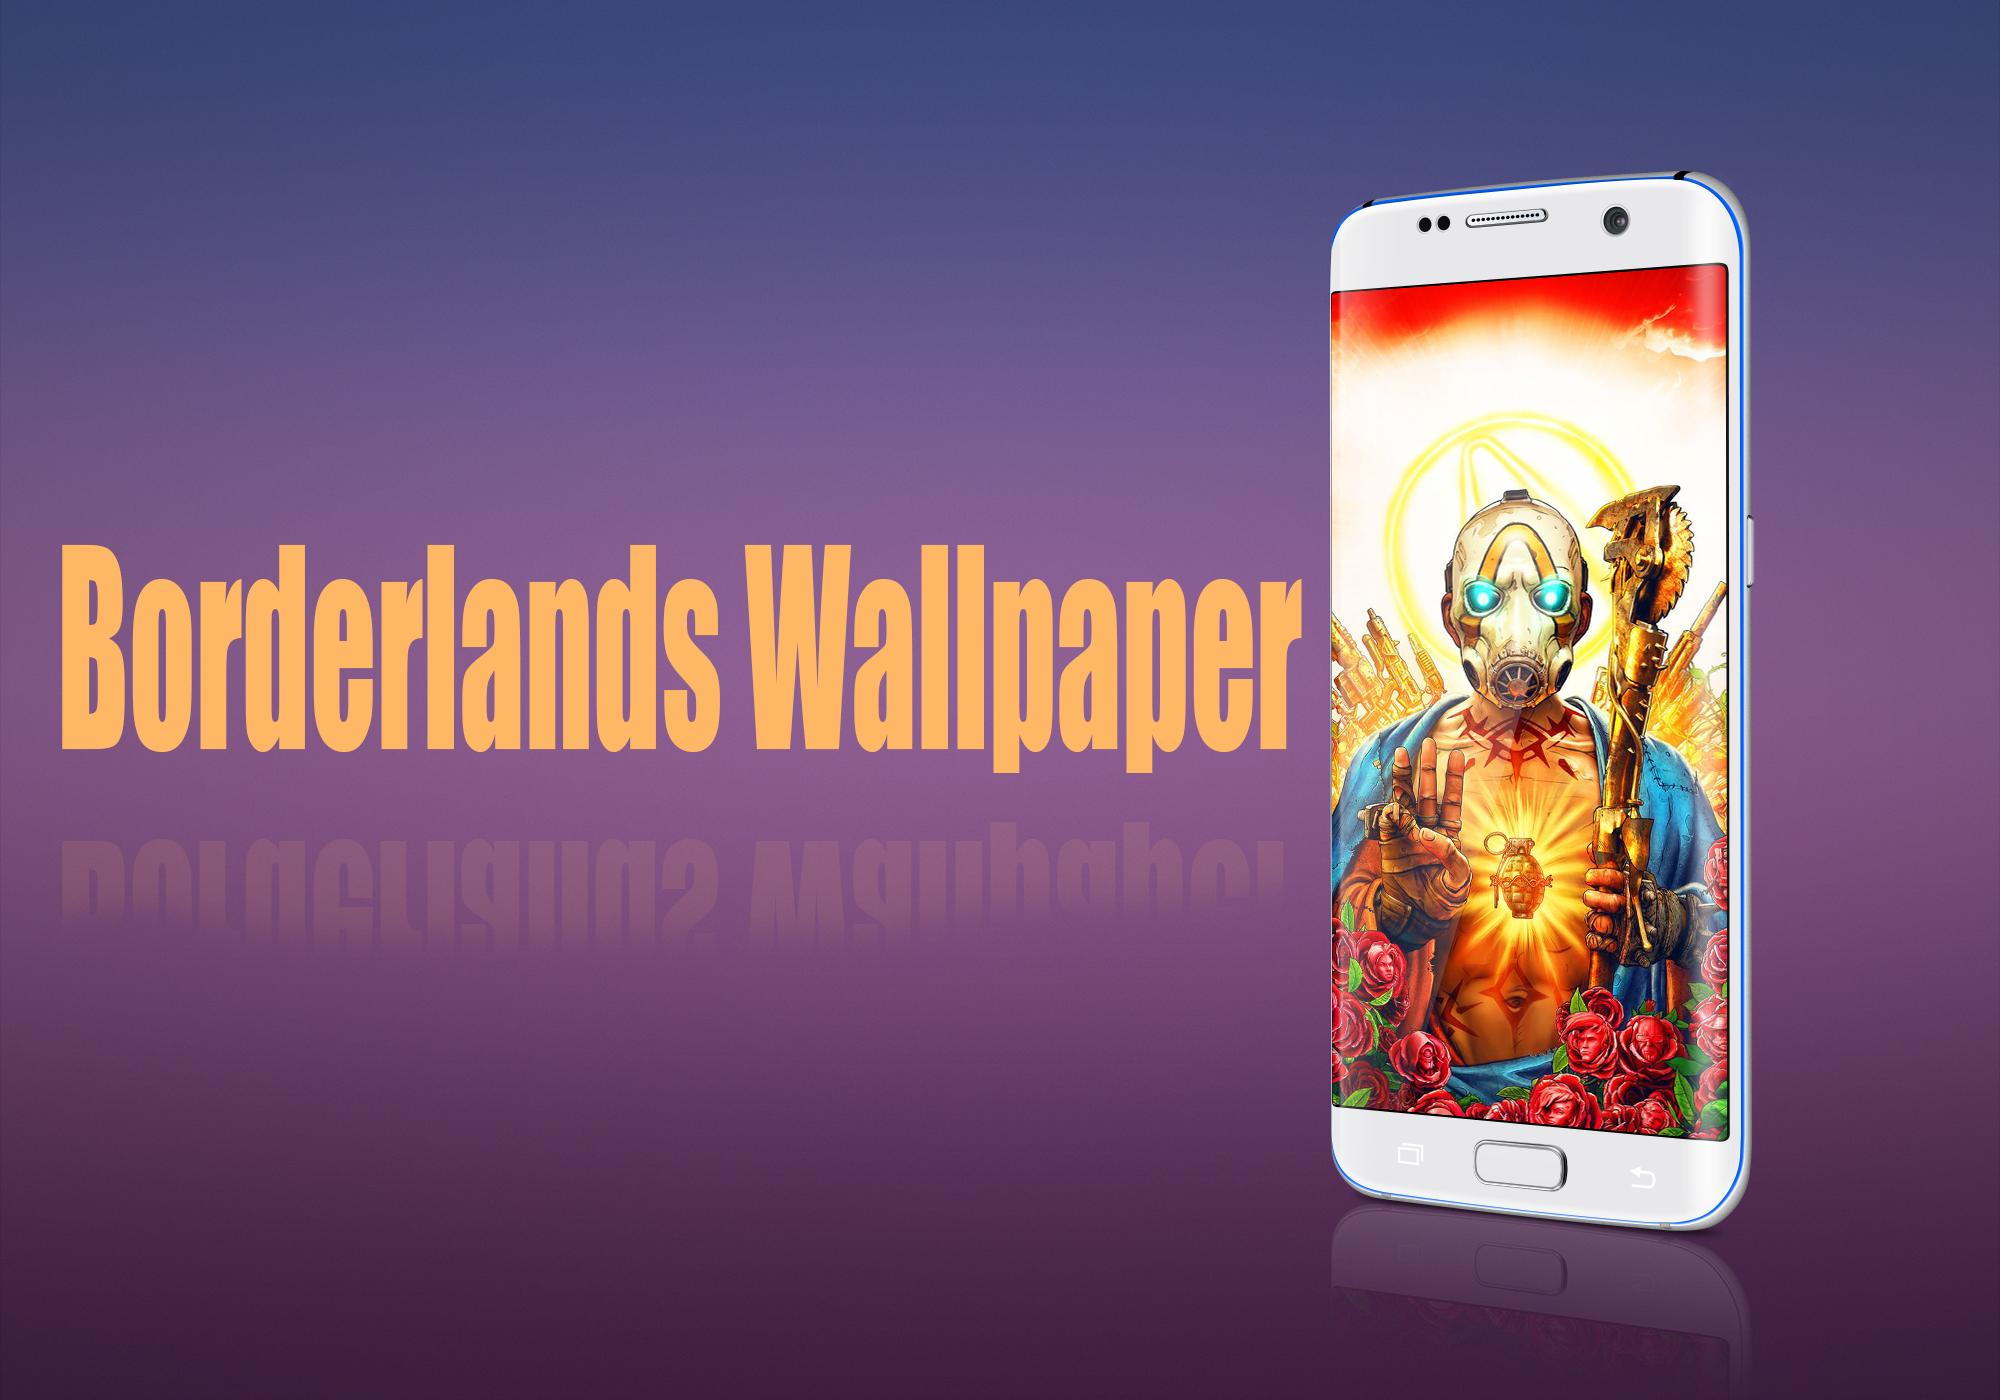 4k And Hd Borderlands Wallpaper For Android Apk Download